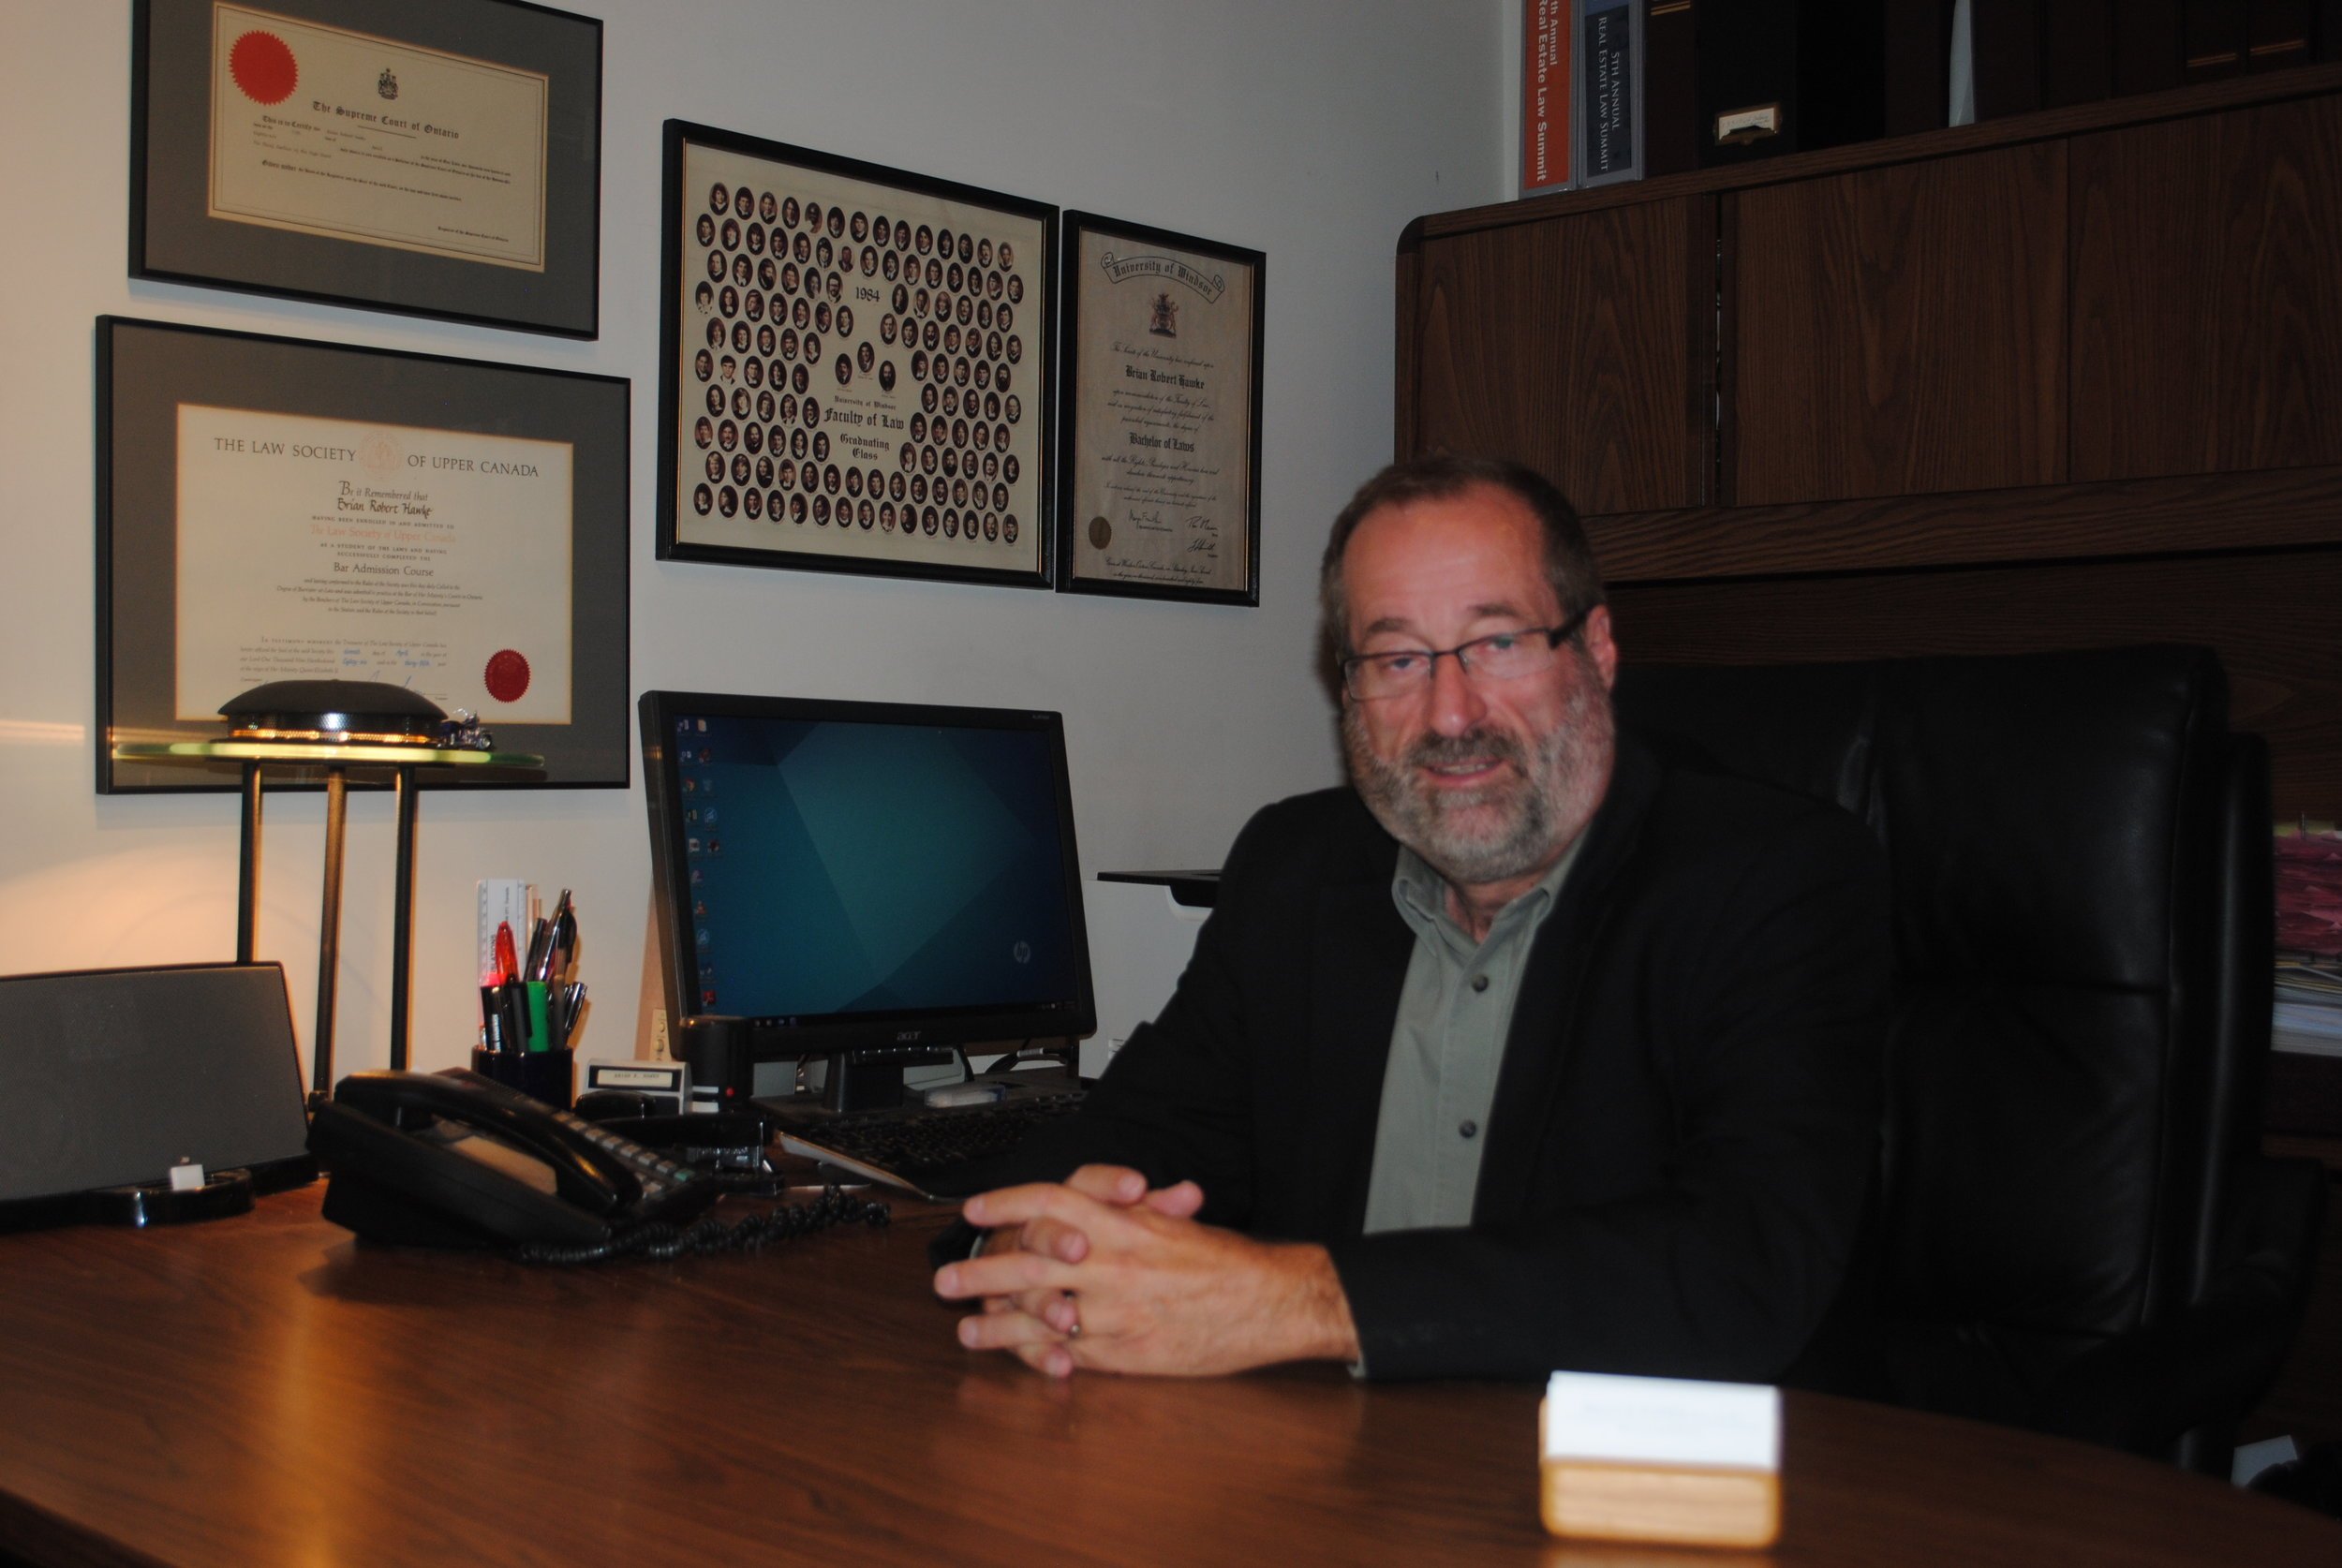 Brian Hawke - Community Lawyer assisting residents of the Durham Region since 1990